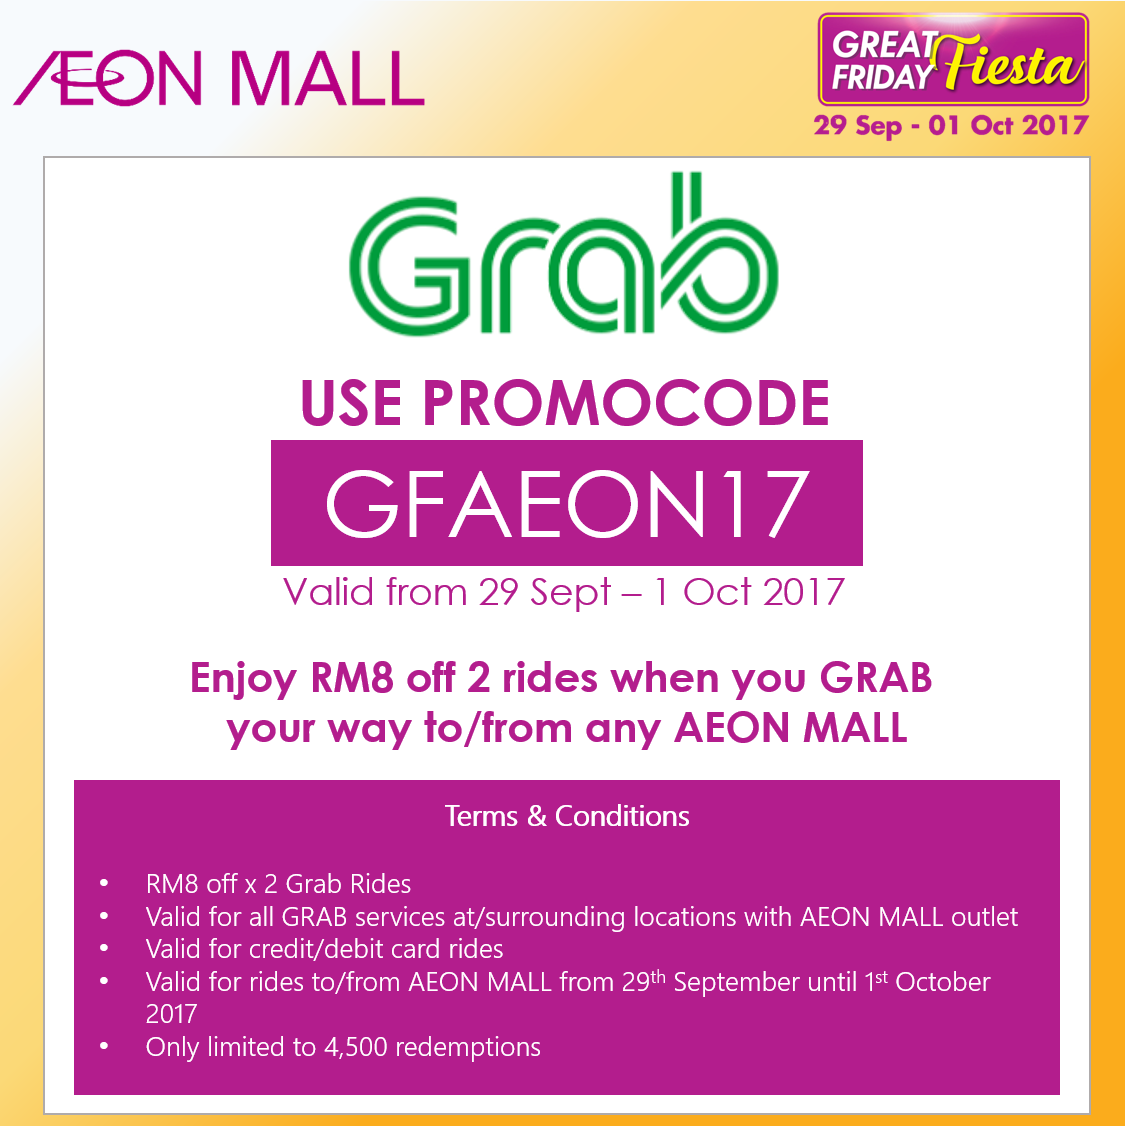 Grab Promo Code RM8 Discount x 2 Rides to / from Any AEON Mall 29